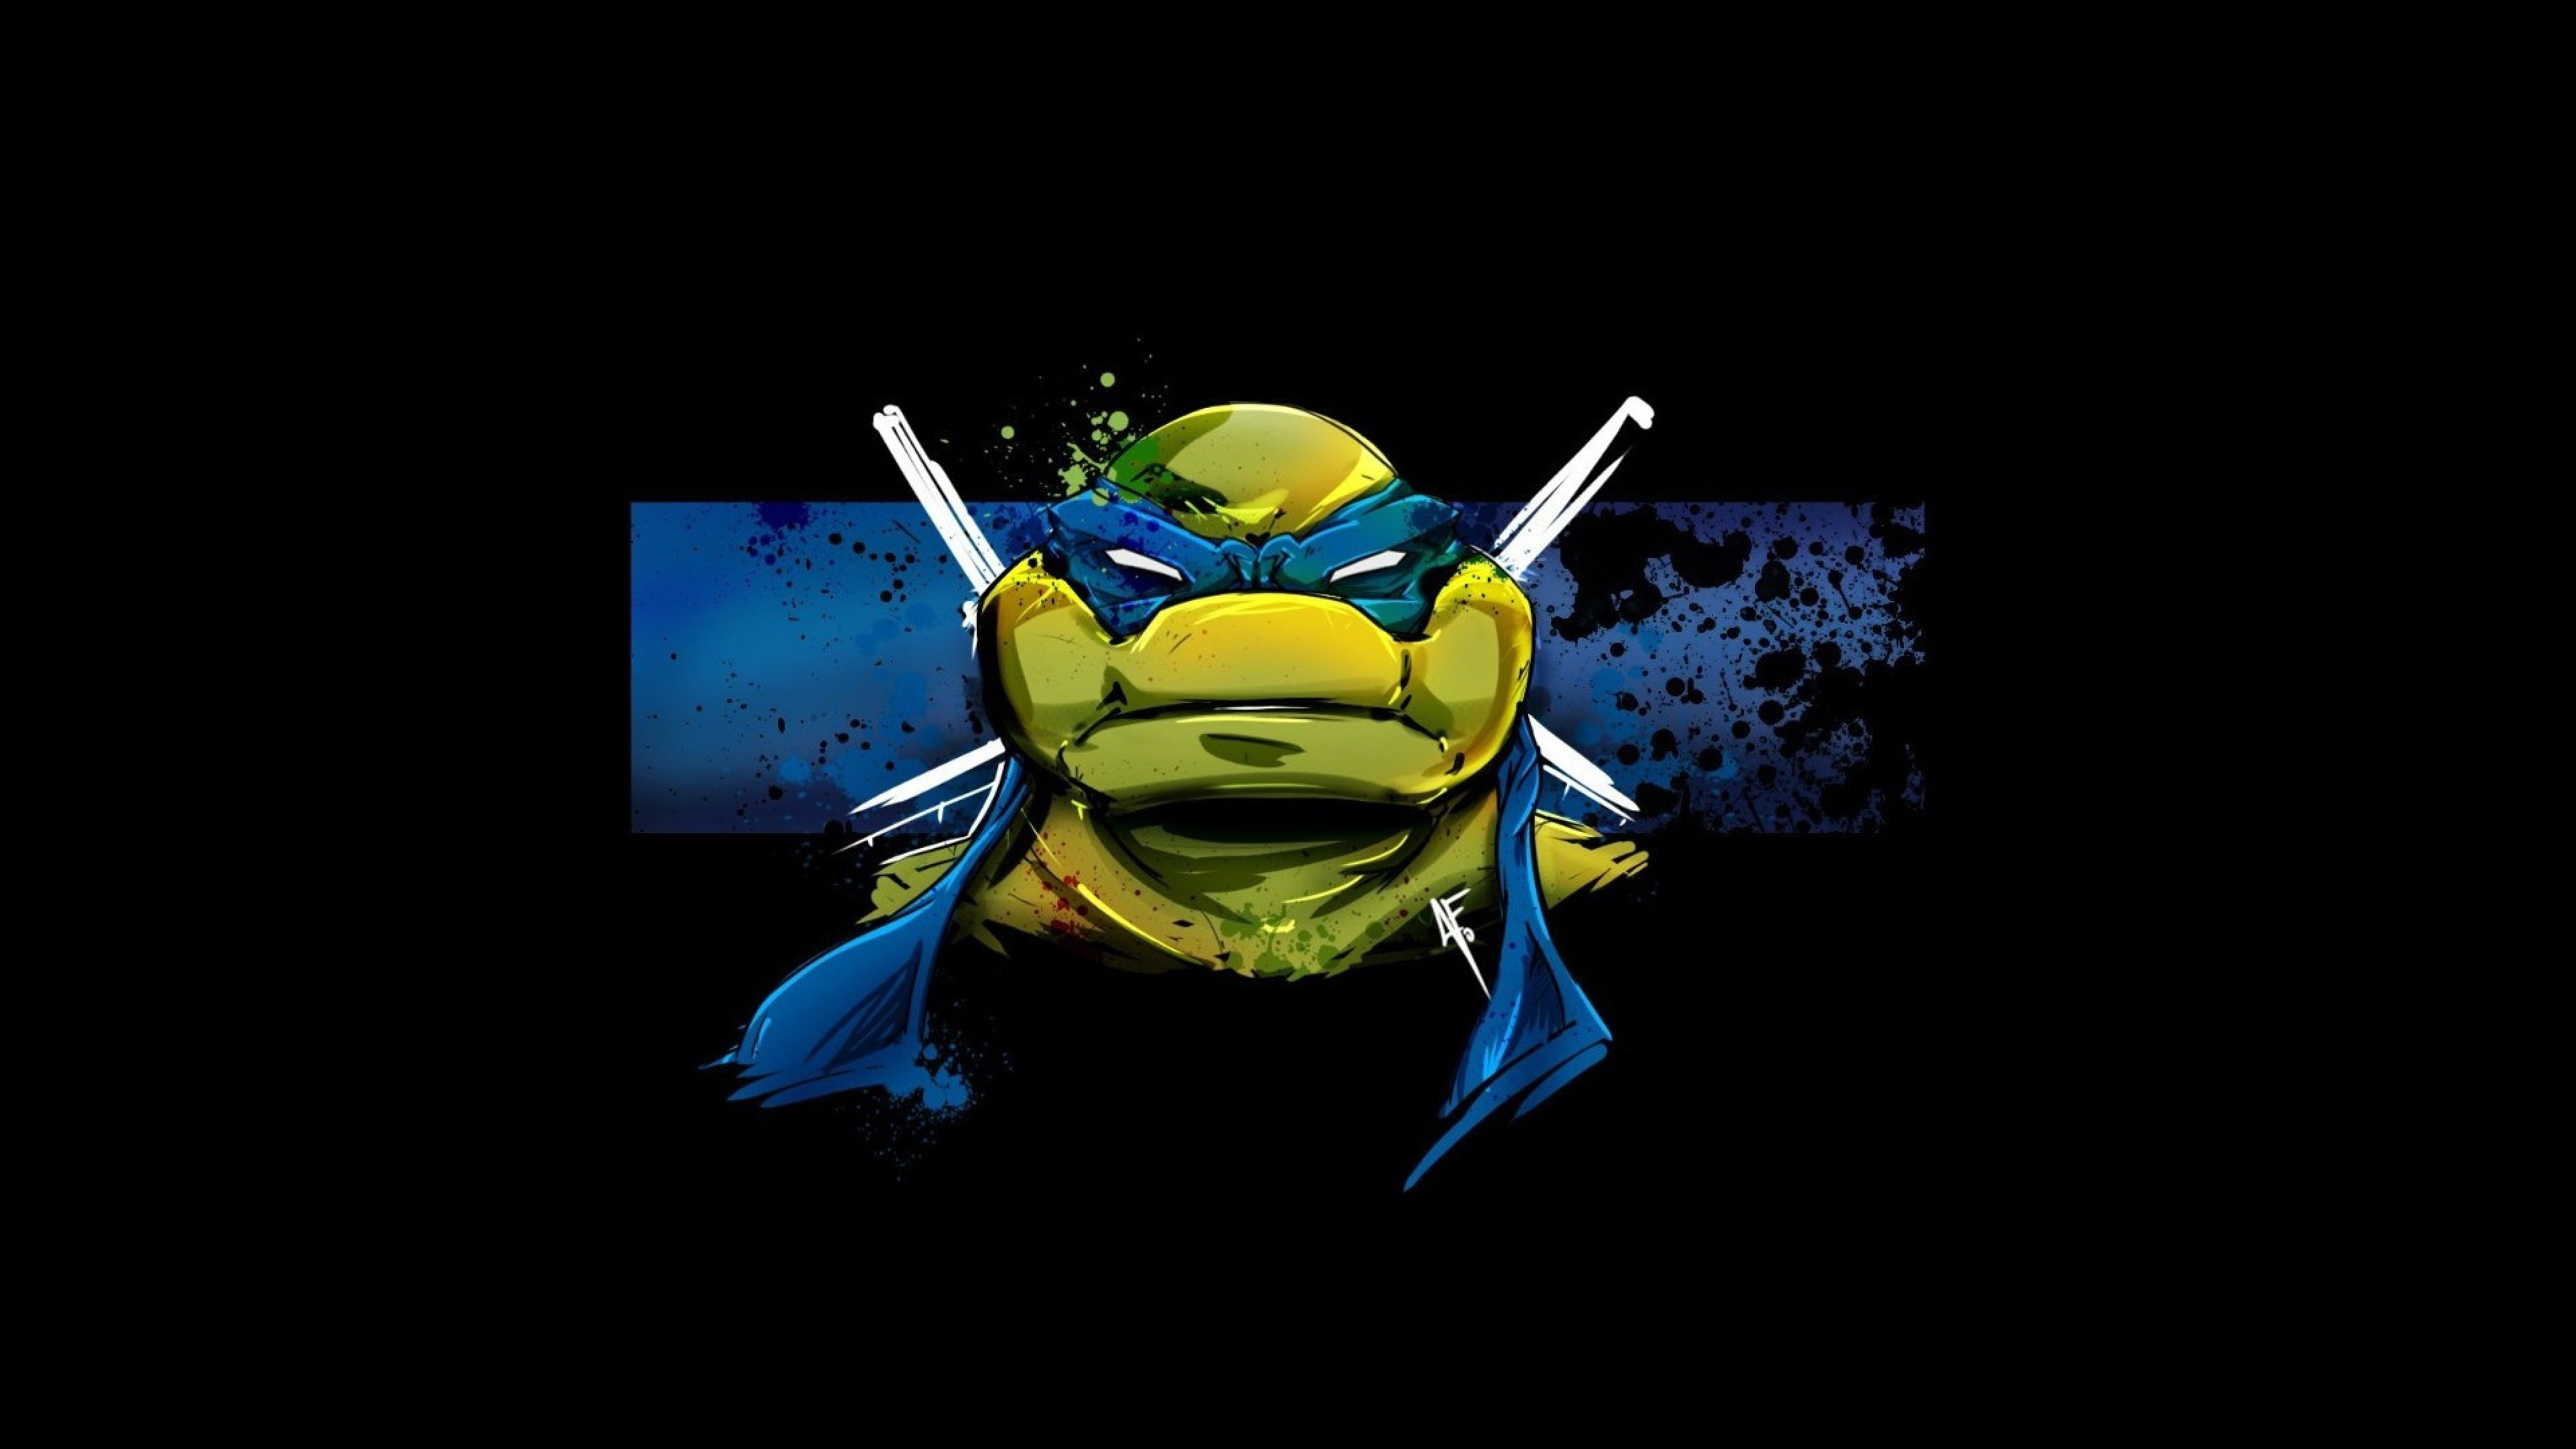 3840x2160 Leonardo minimalism ninja turtles tmnt wallpapers.